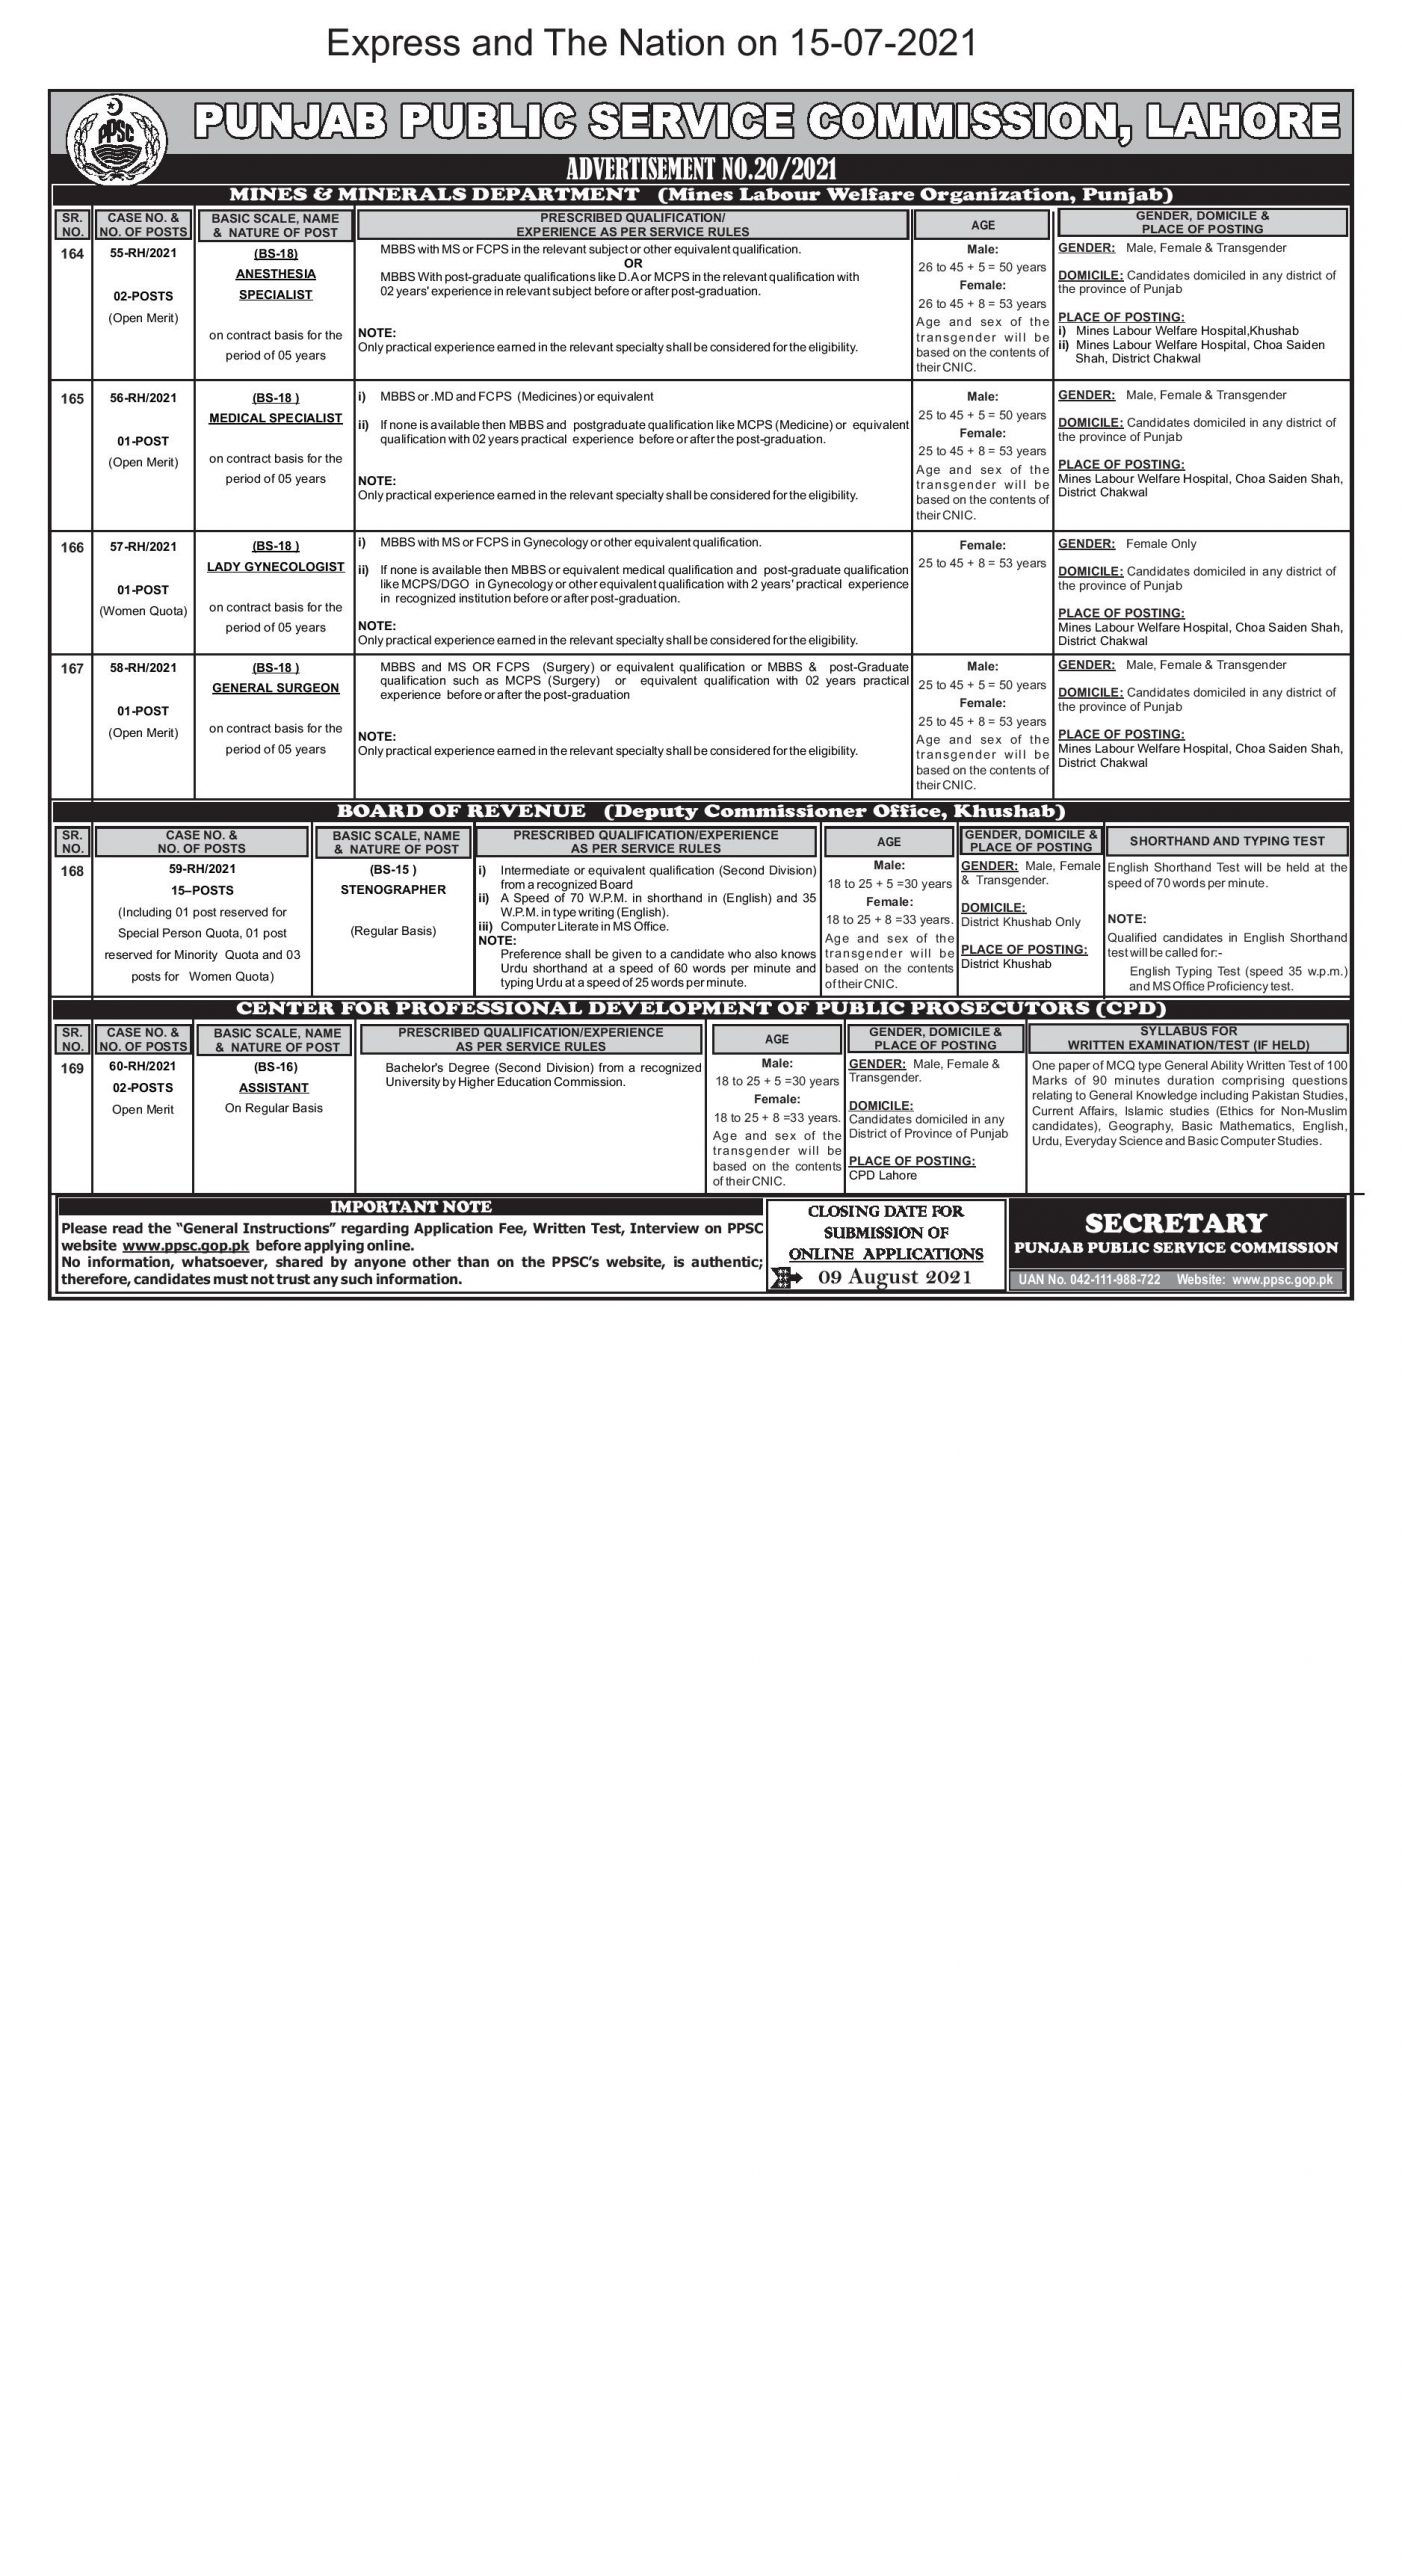 PPSC jobs today 2021 ppsc online apply 2021 -Advertisement No 20/2021